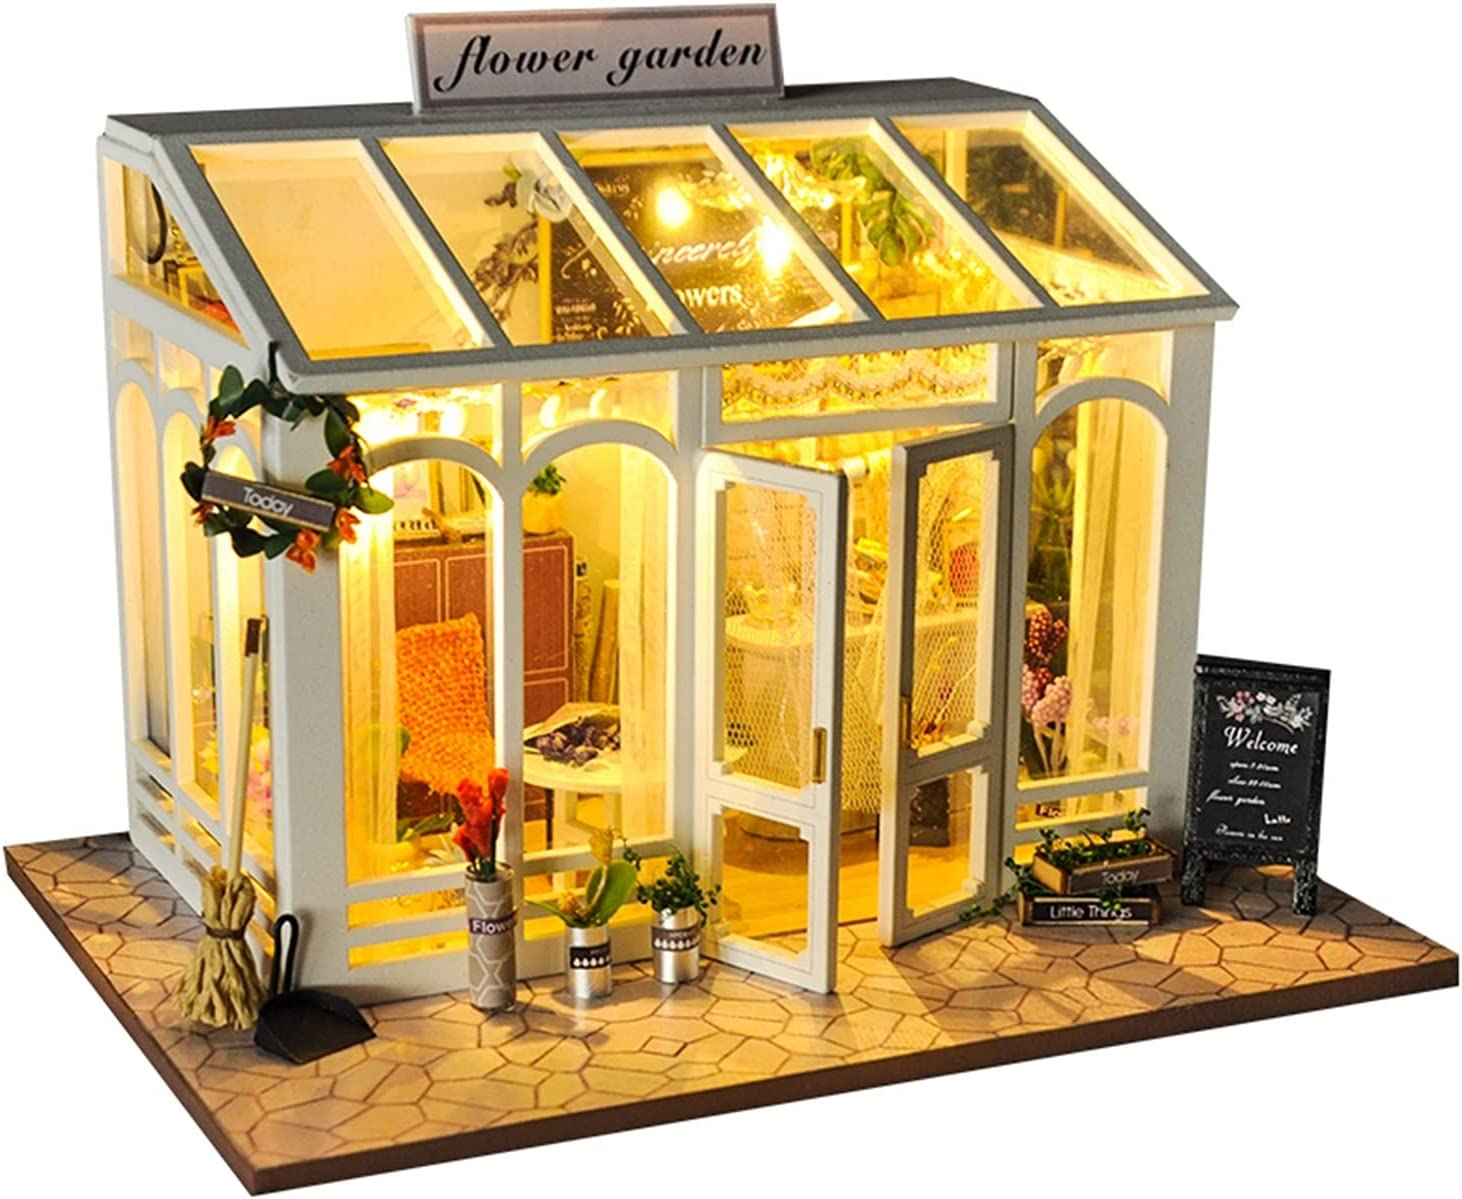 JPMSB Doll House Miniature DIY Dollhouse Wooden Furnitures with Direct sale of manufacturer OFFicial shop